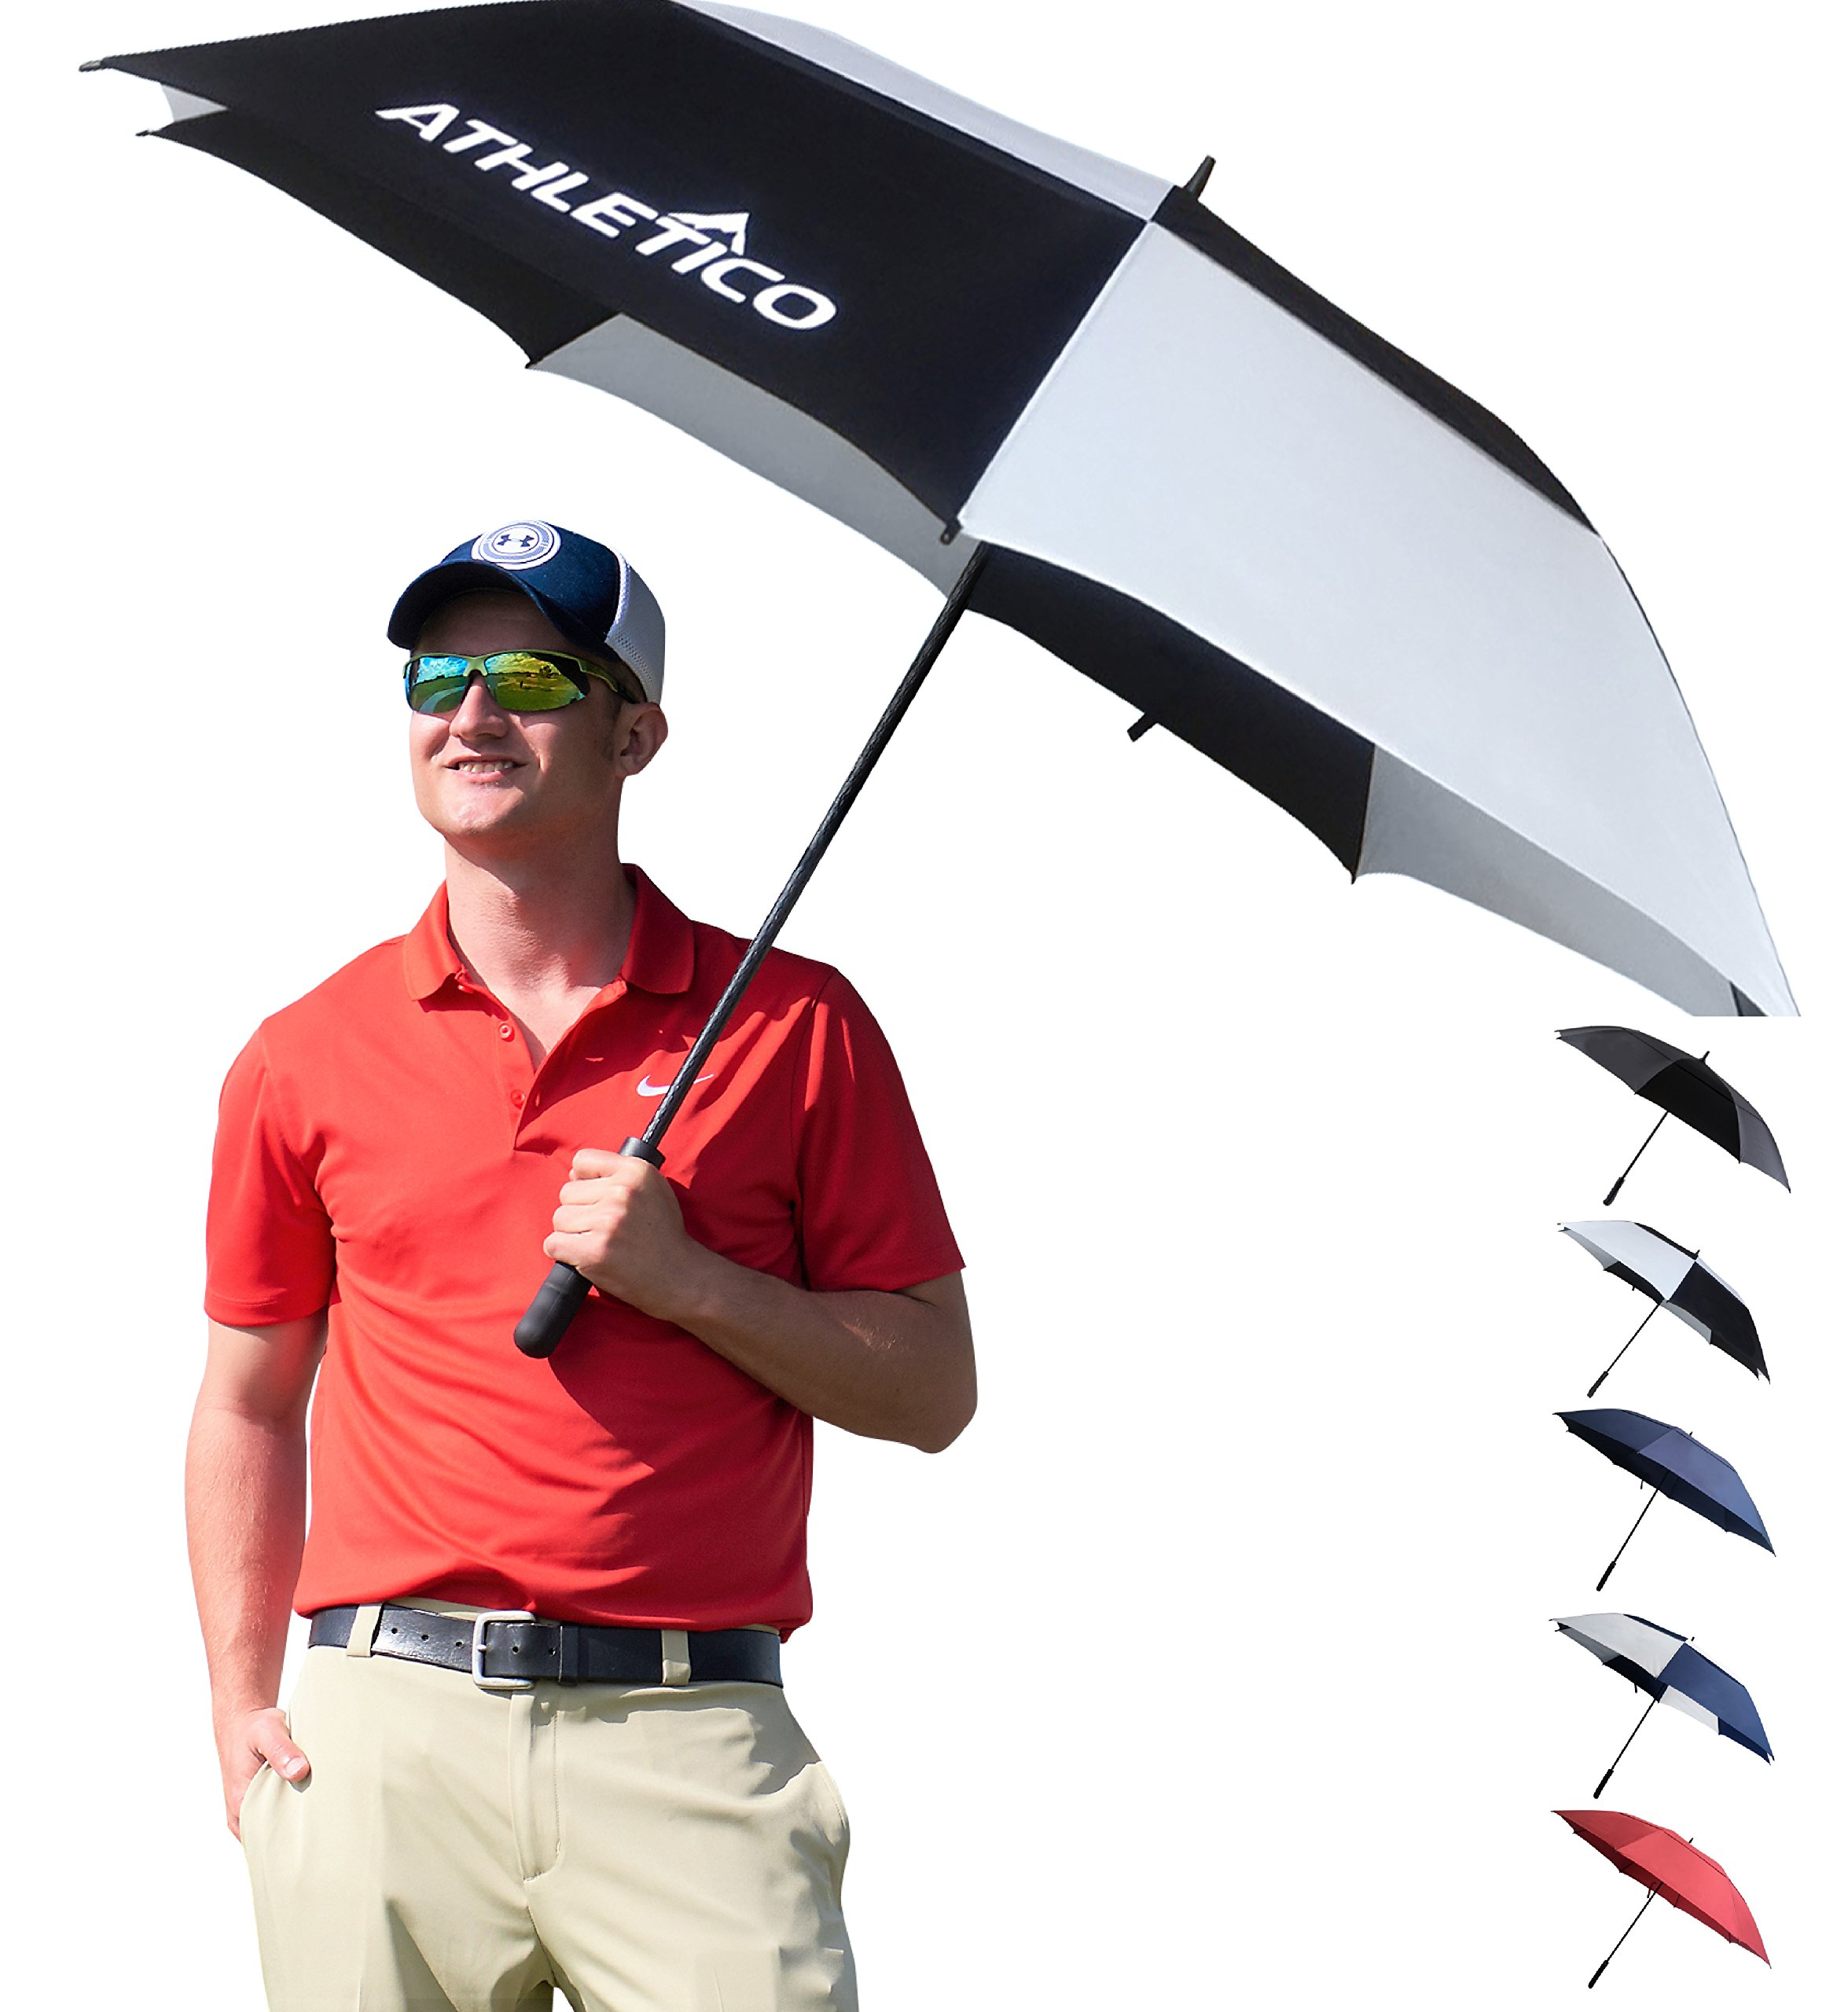 Athletico 68 inch Automatic Open Golf Umbrella - Extra Large Double Canopy Umbrella is Windproof and Waterproof - Features Ergonomic Rubber Handle (Black/White, 68 inch)